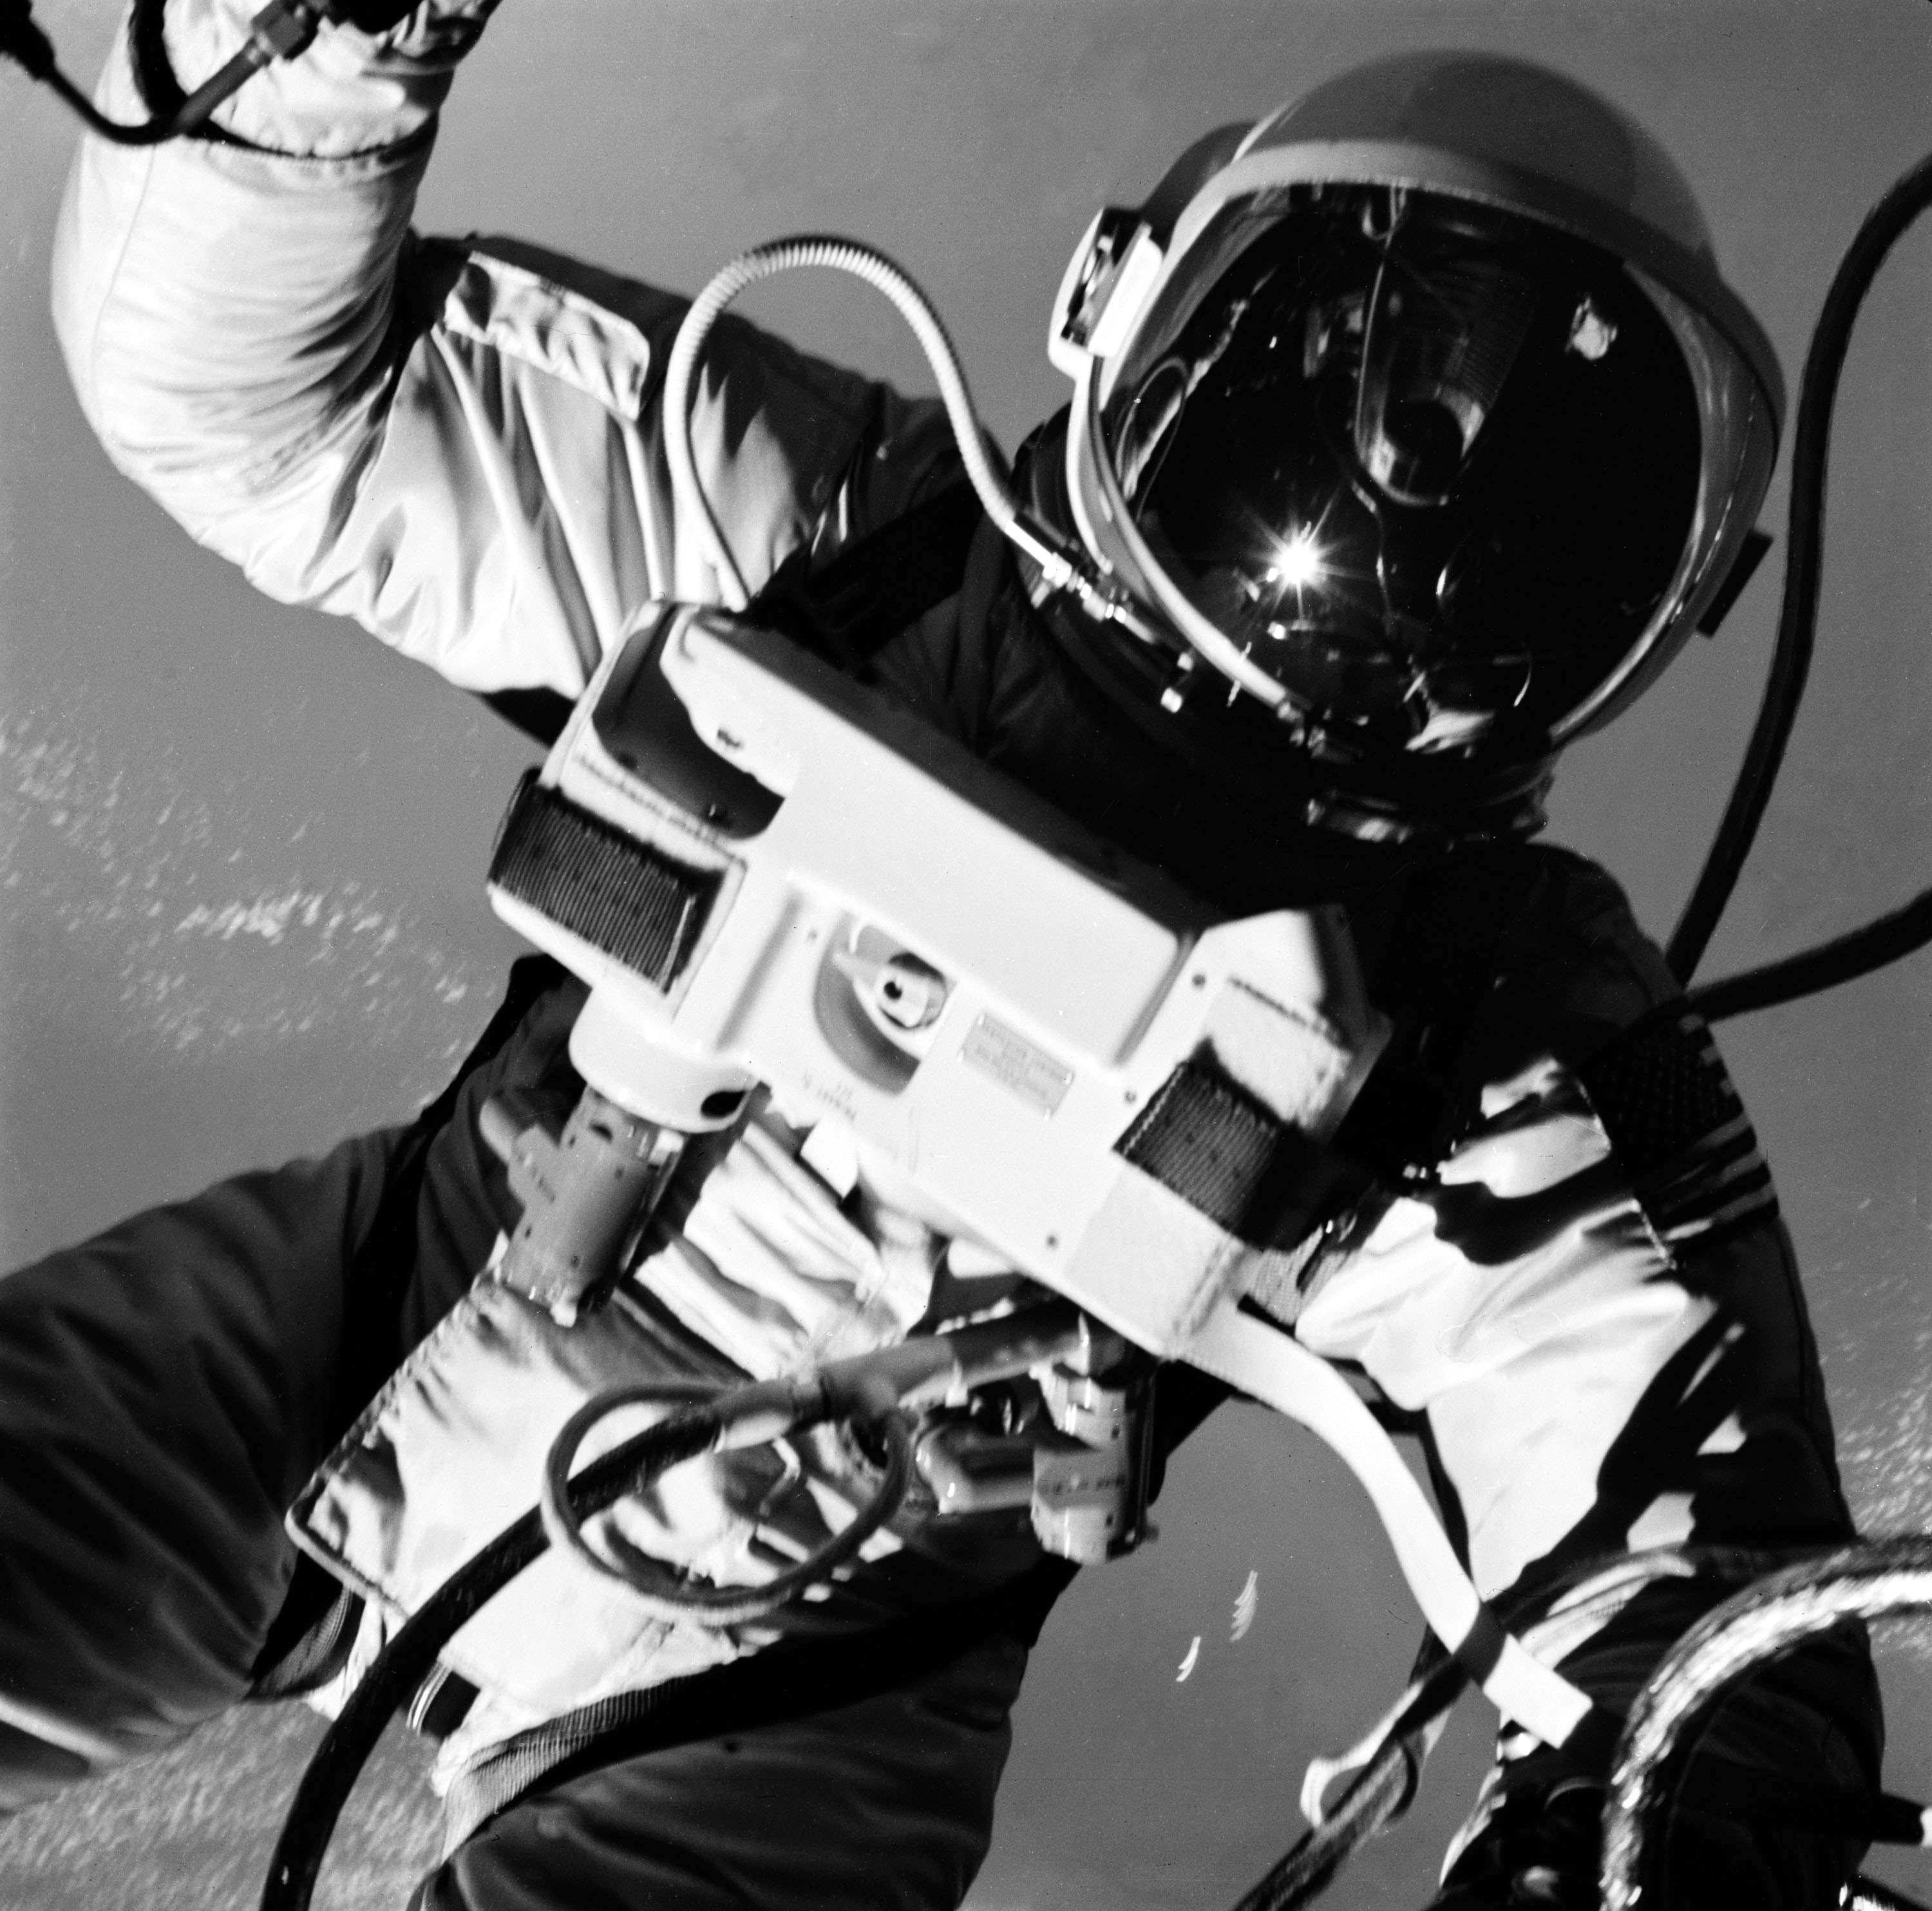 astronauts in space black and white - photo #26